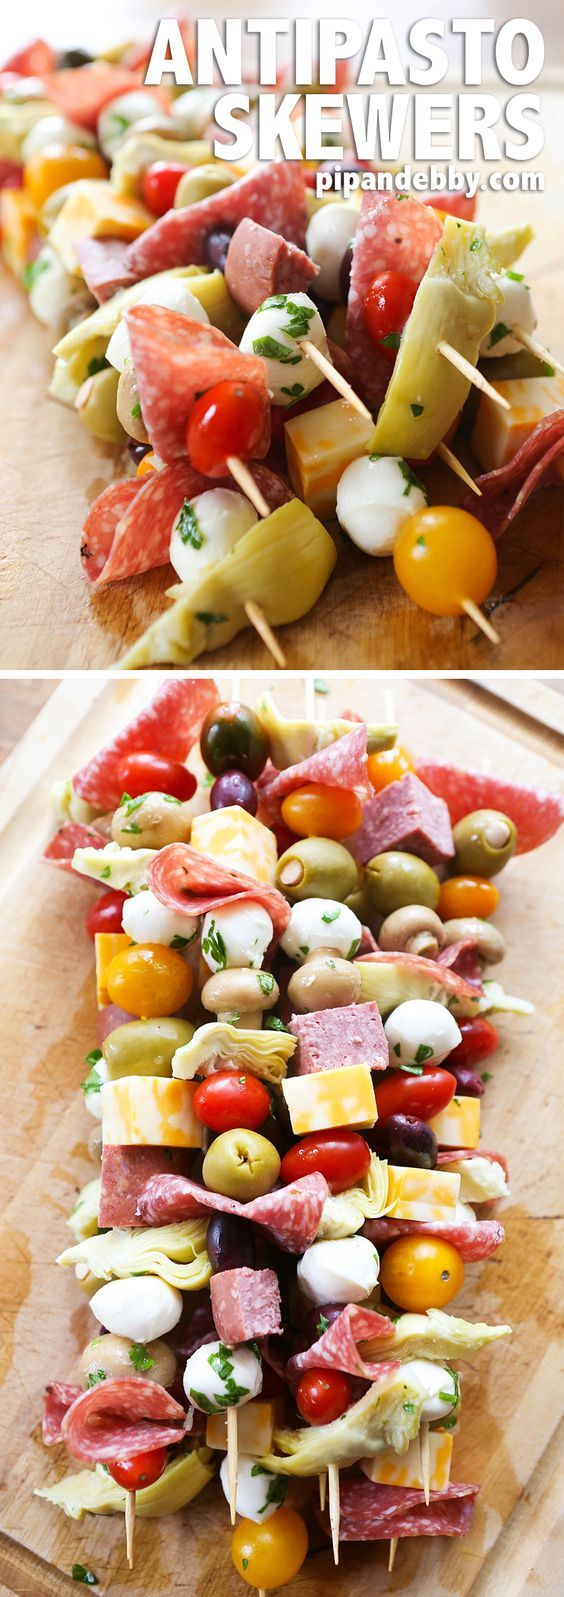 Antipasto Skewers | Turn Antipasto Salad into a delicious finger food! These Antipasto Skewers are easy to prepare and they're great as an appetizer or party food.